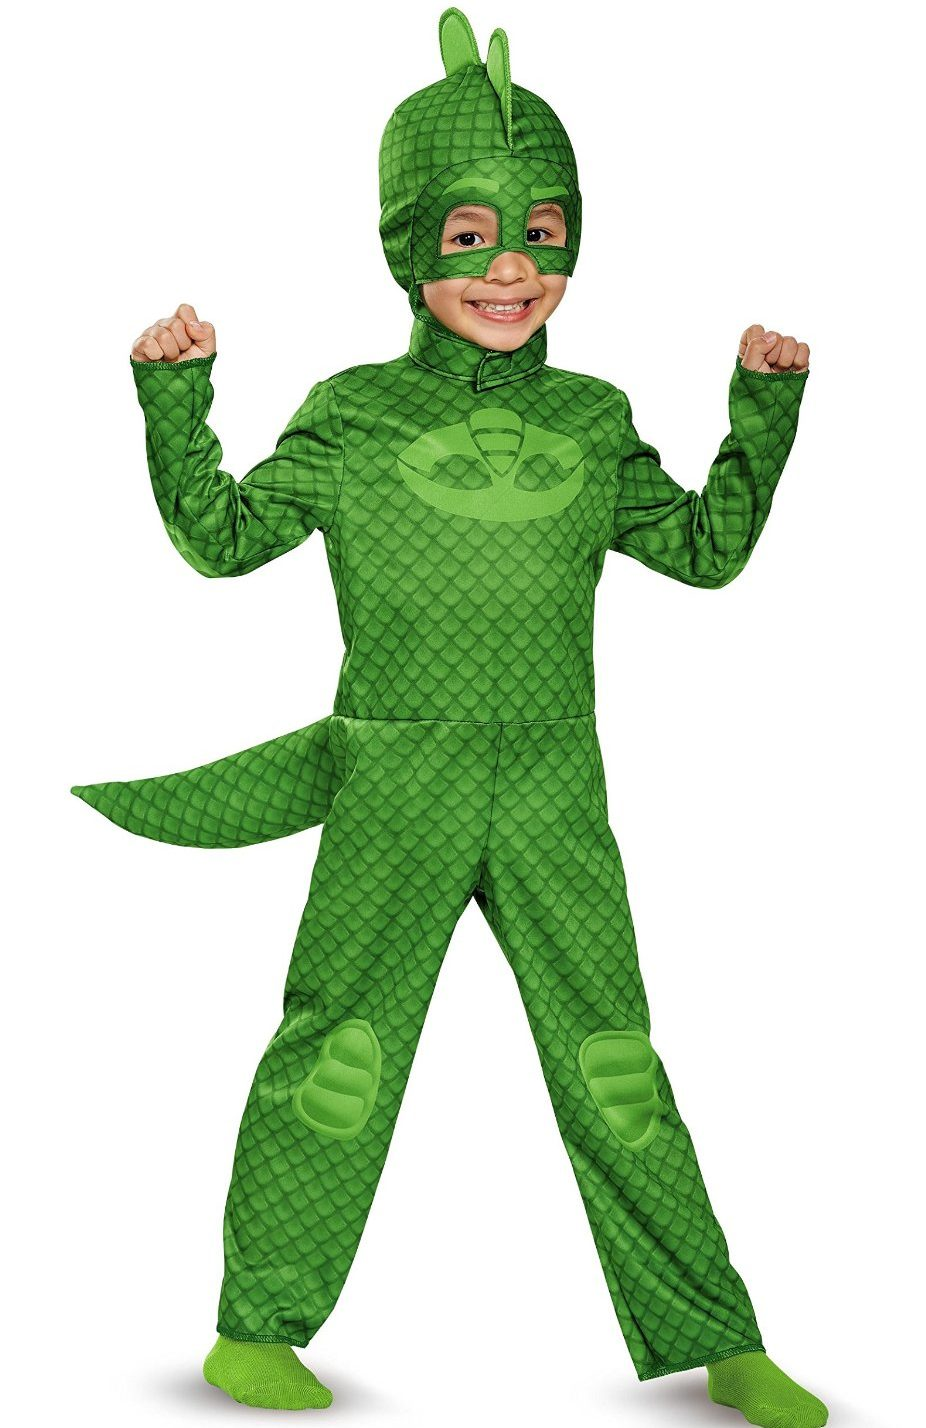 gekko-classic-toddler-pj-masks-costume-from-disguise